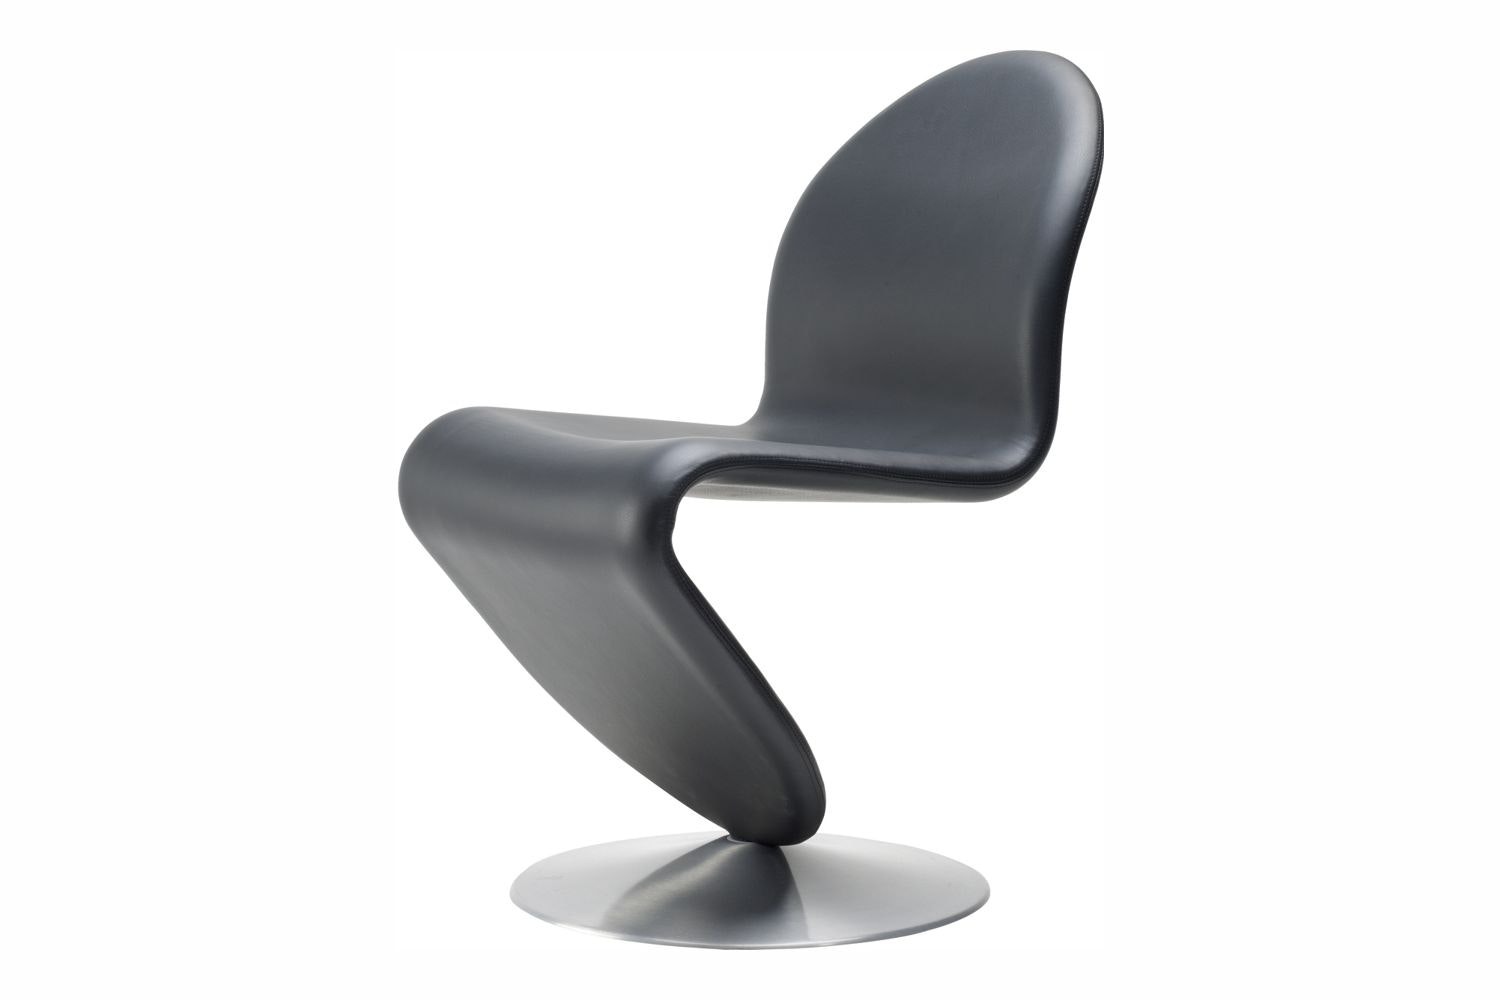 System 1-2-3 Dining Chair Standard by Verner Panton for Verpan